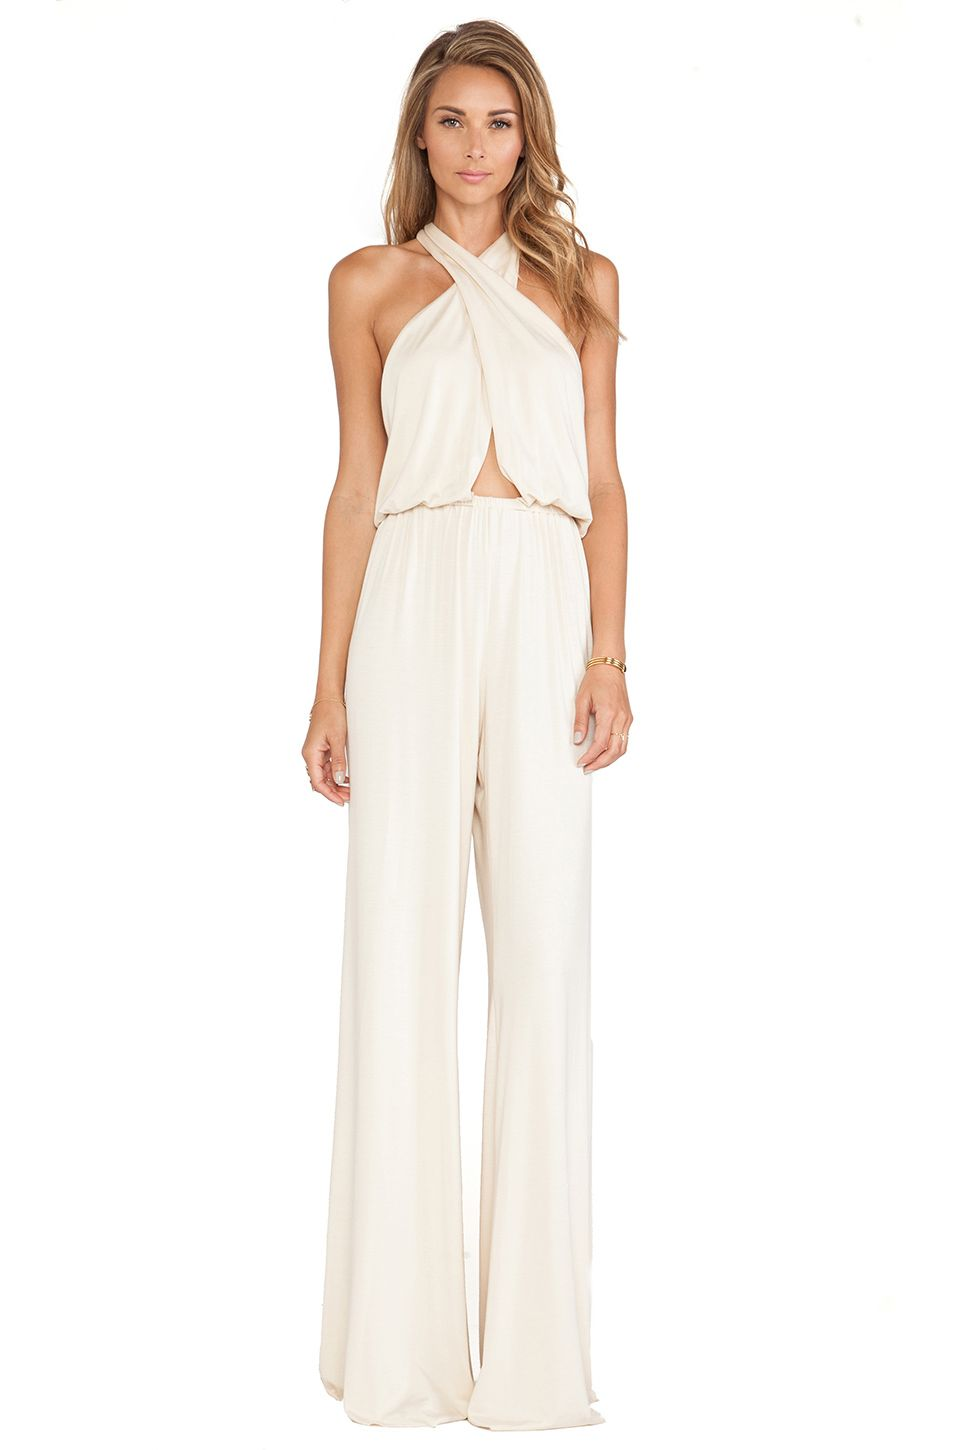 656990ad9dc  REVOLVEclothing austin jumpsuit in cream or black by rachel pally 242  criss cross halter with a little cutout near midriff wide leg flowy